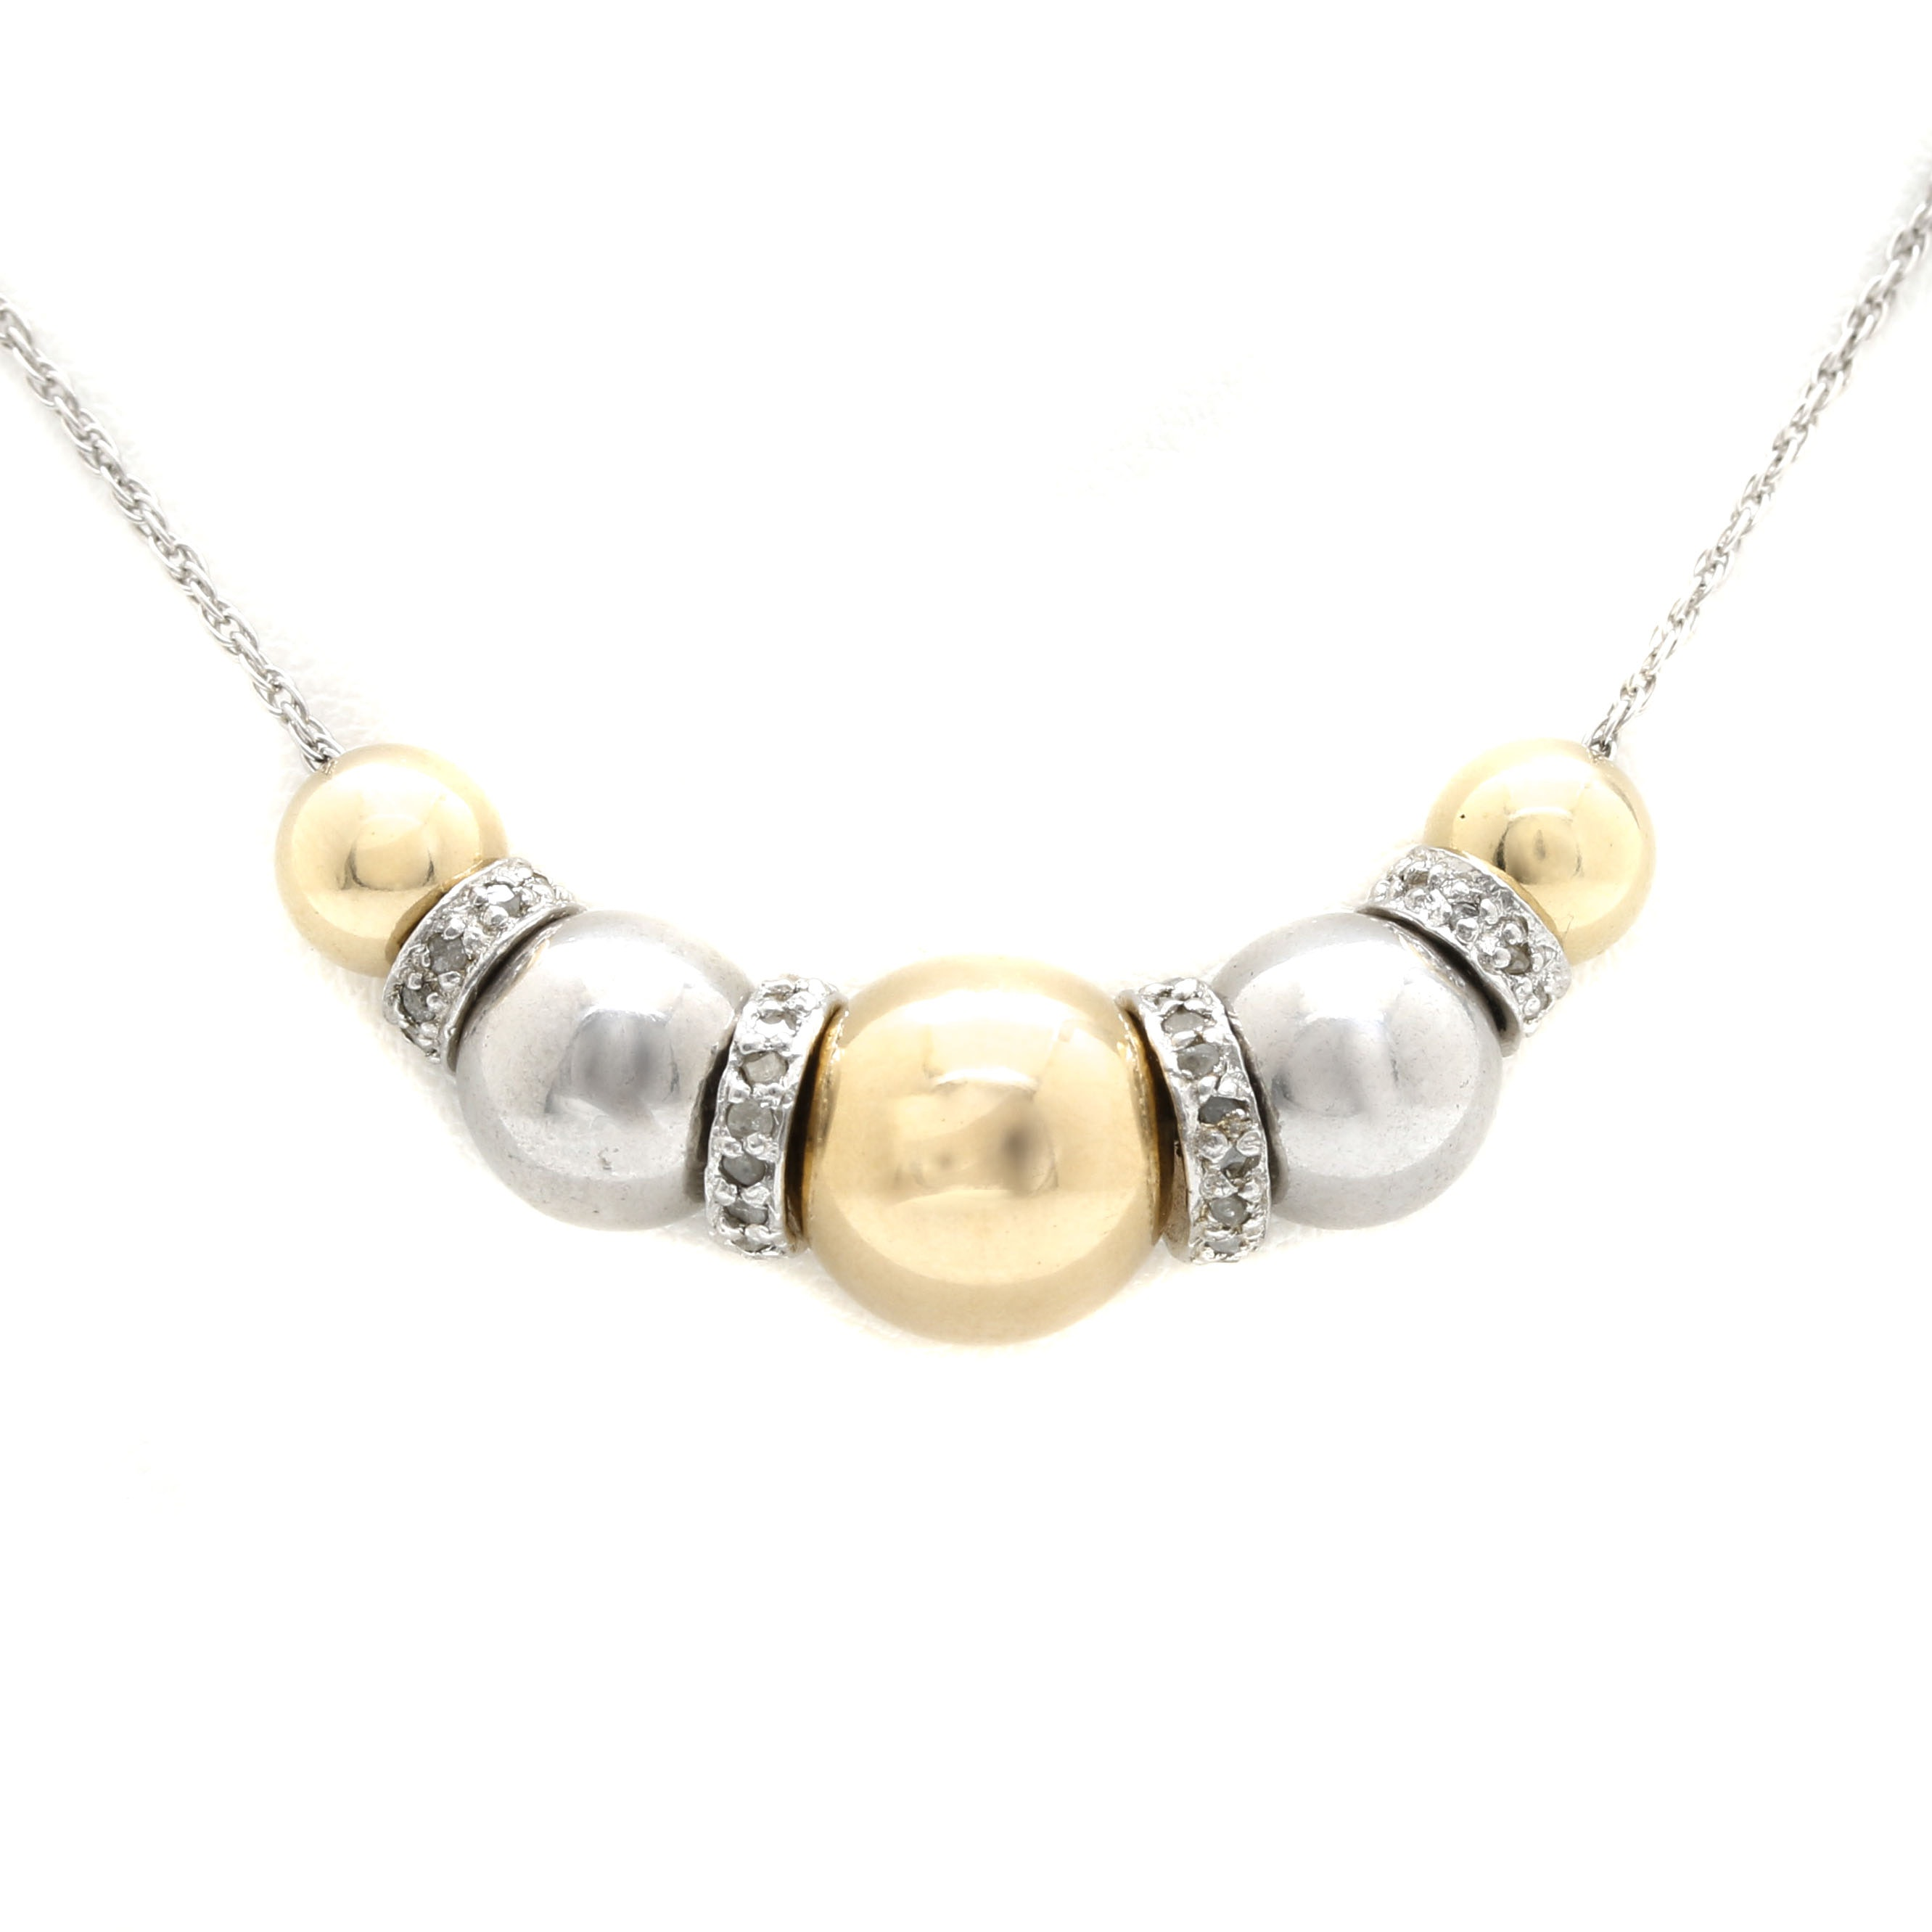 Sterling Silver and 14K Yellow Gold Diamond Necklace